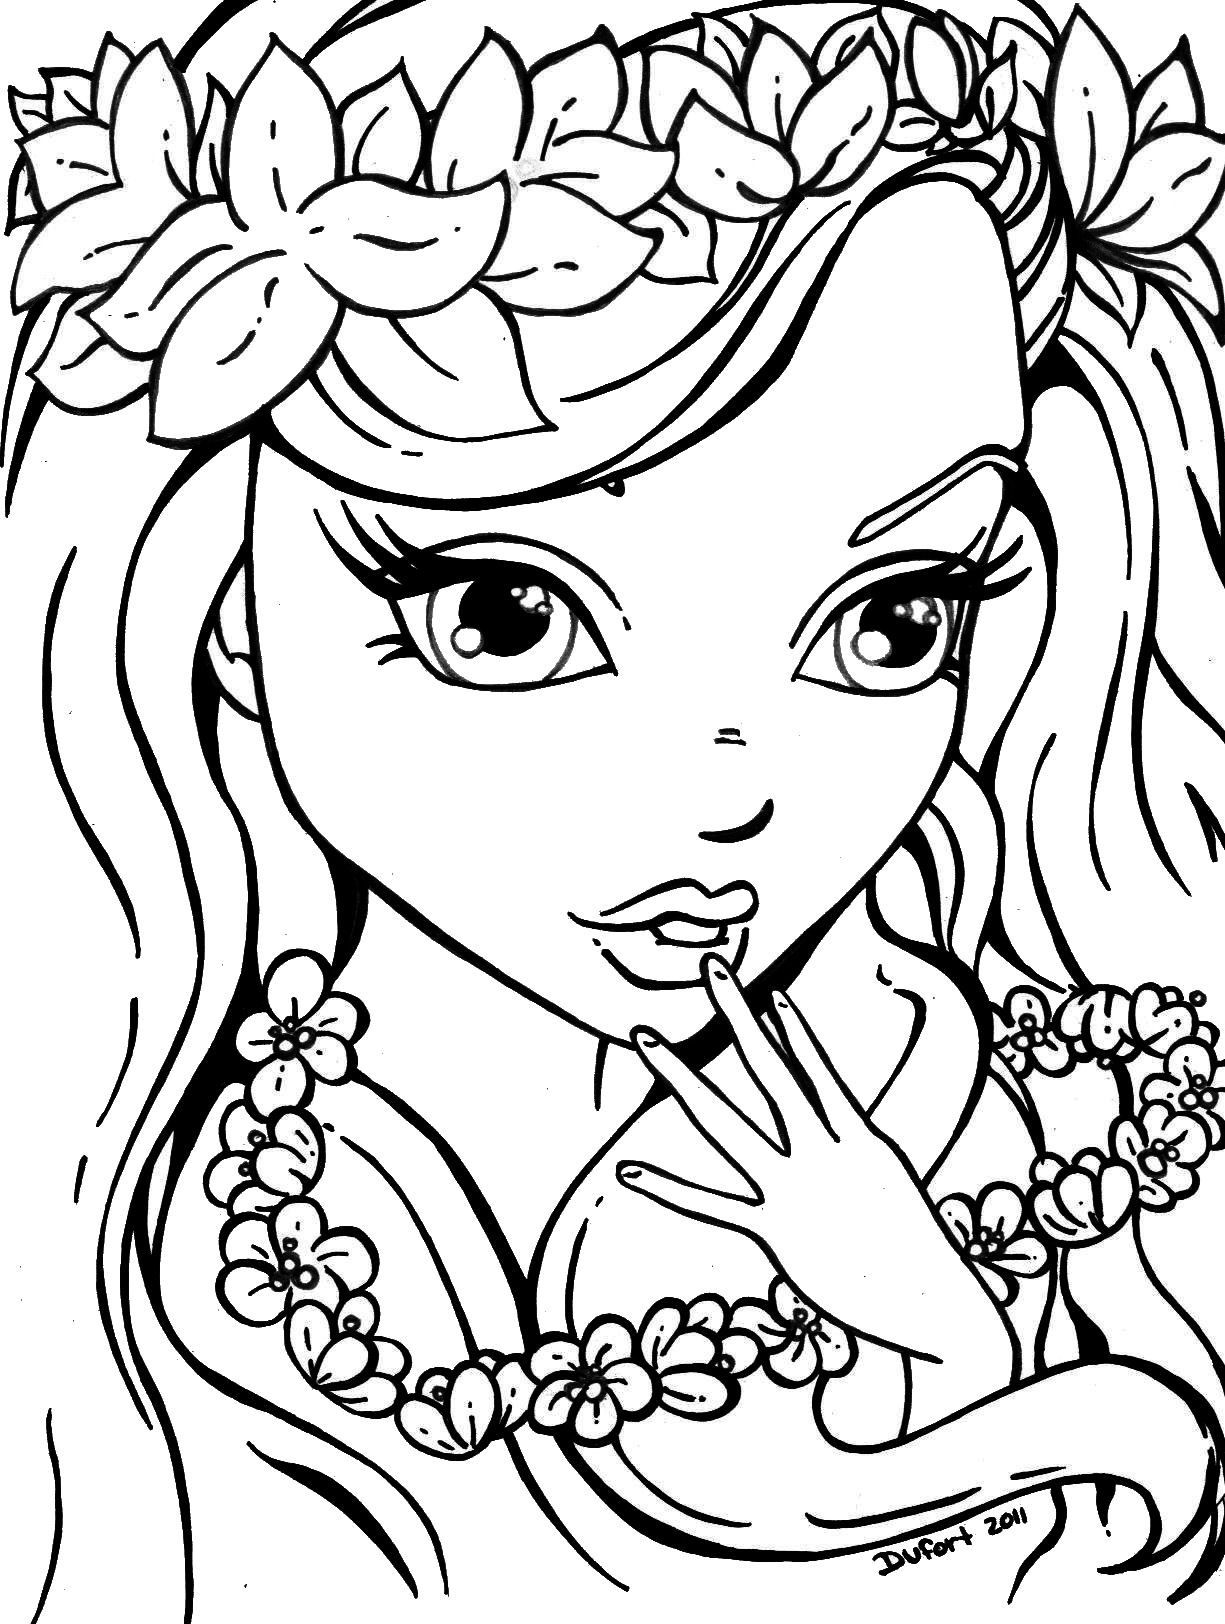 Coloring Sheets For Teenage Girls  Coloring Pages For Teenage Girls Coloring Home